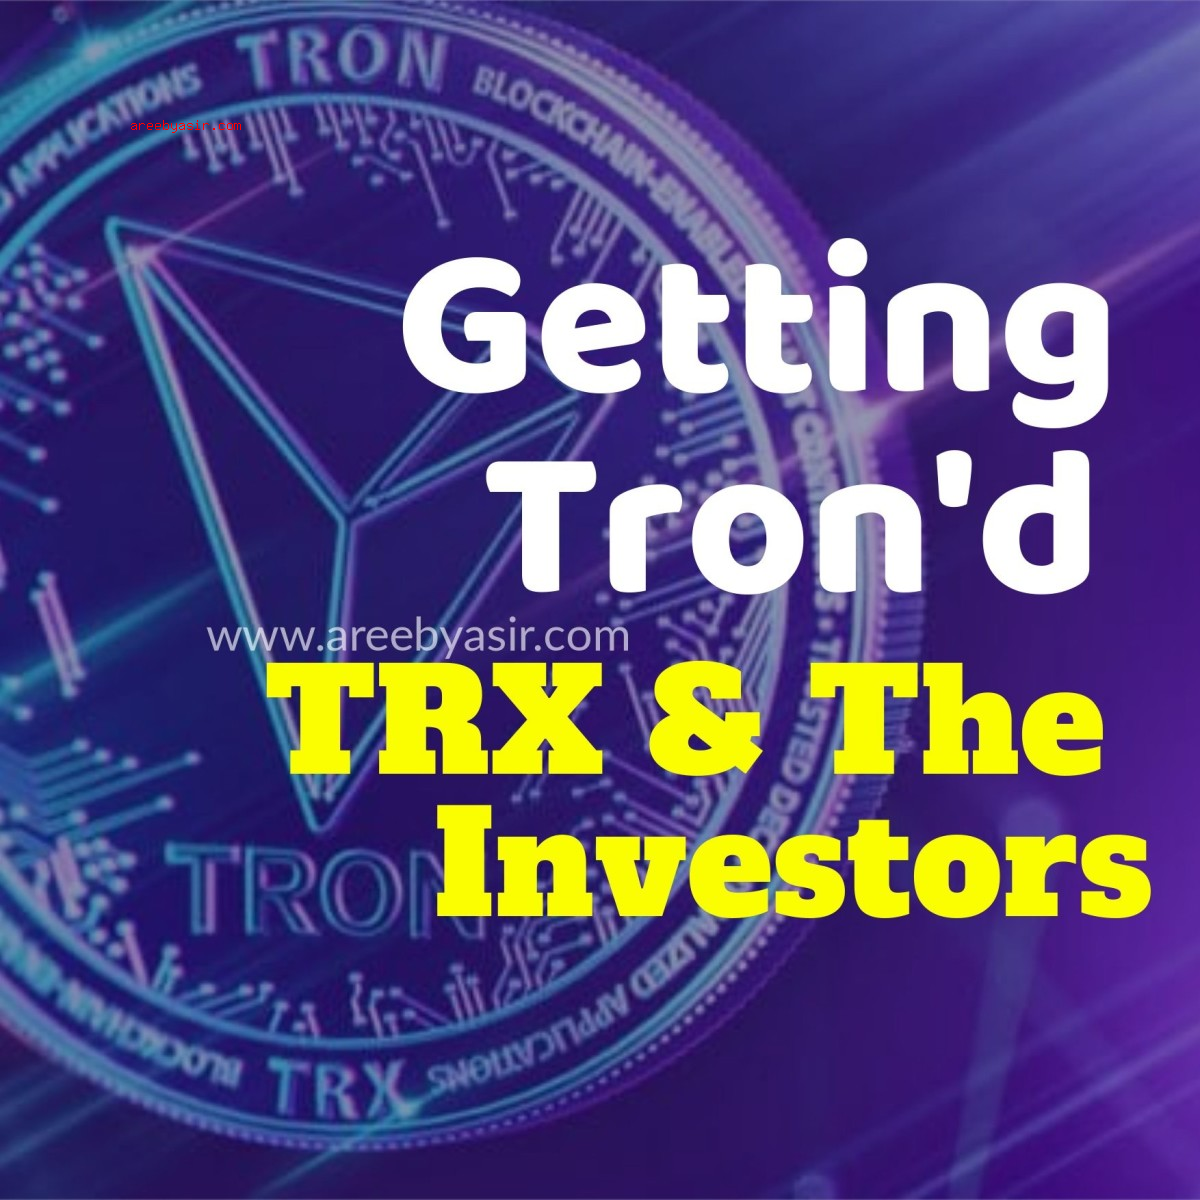 I got TRON'd: The TRX Fiasco